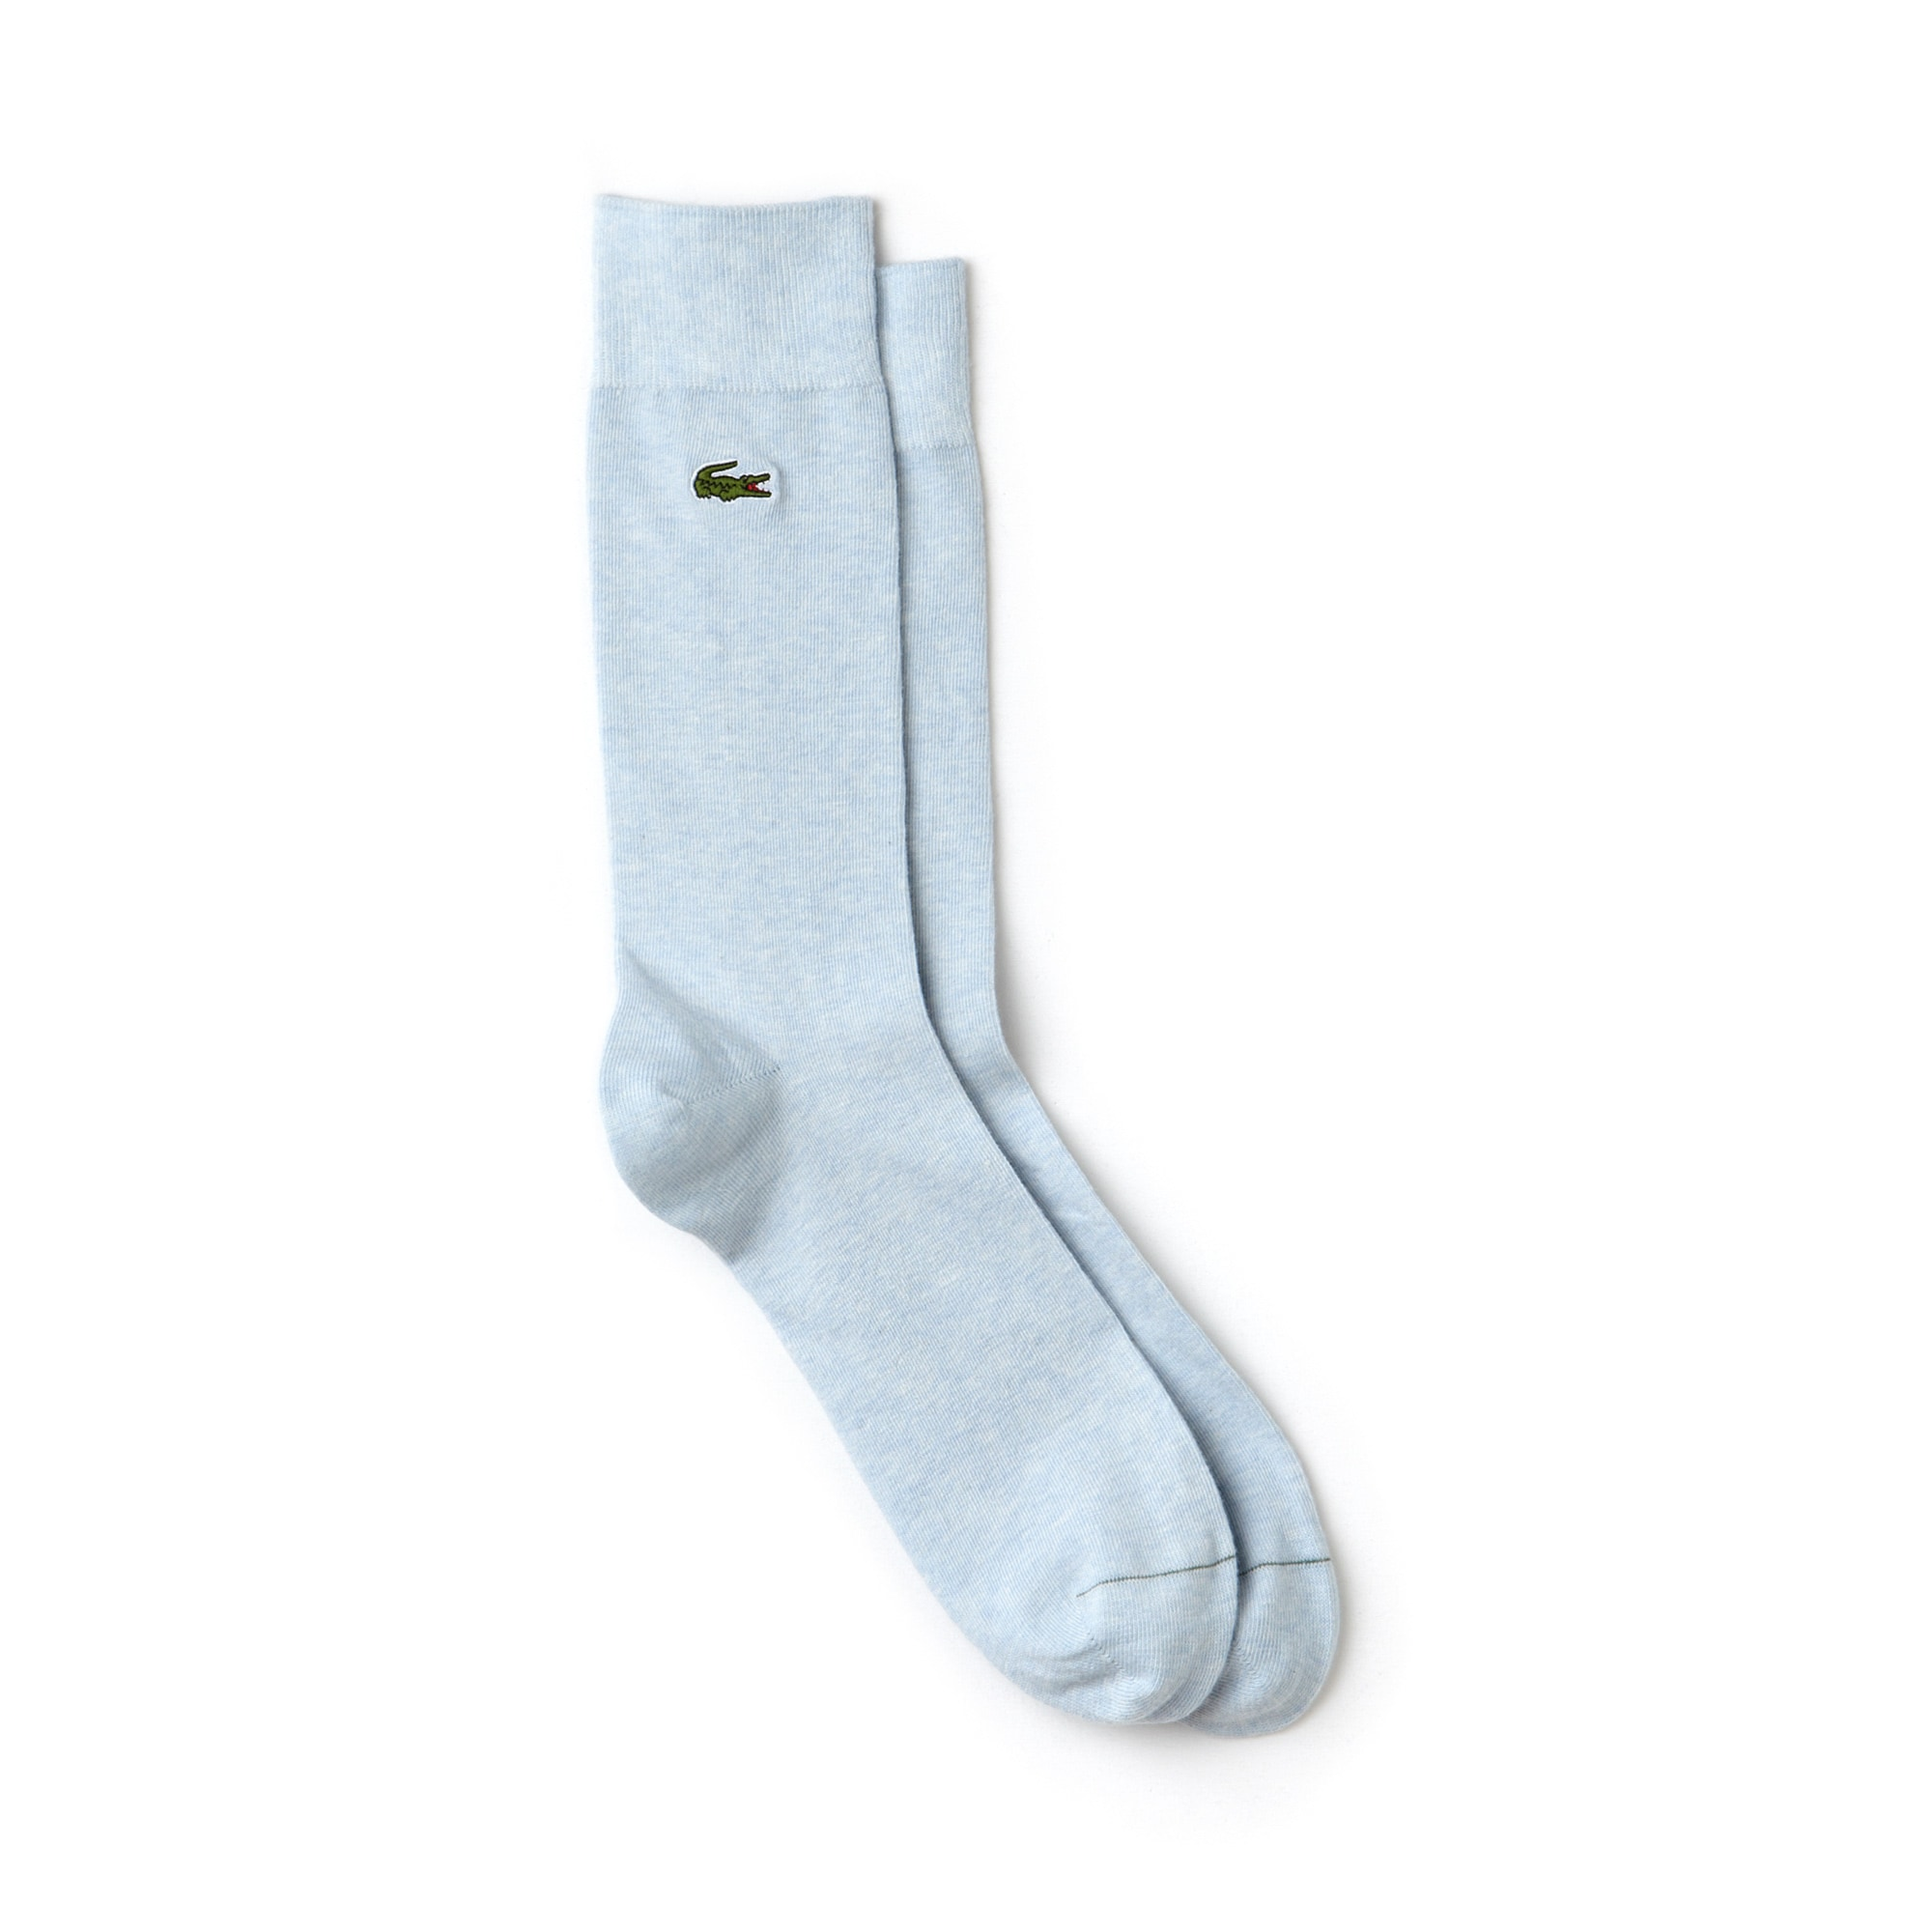 Men's Socks in unicolour jersey